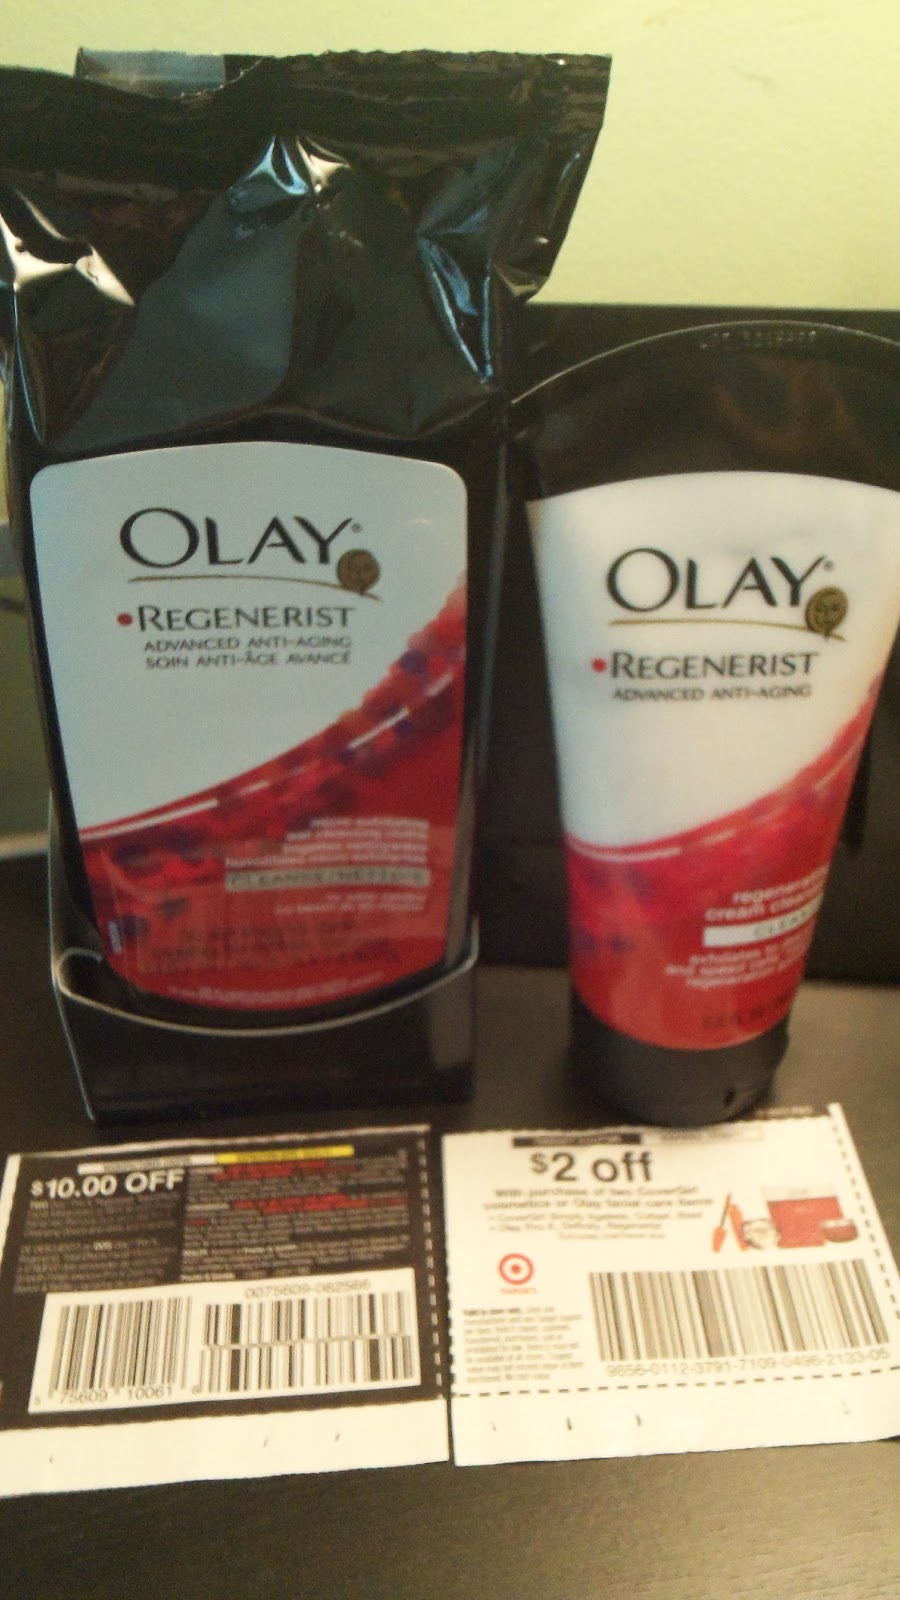 2 FREE Olay Regenerist Cream Cleanser or Wet Cleansing Cloths at